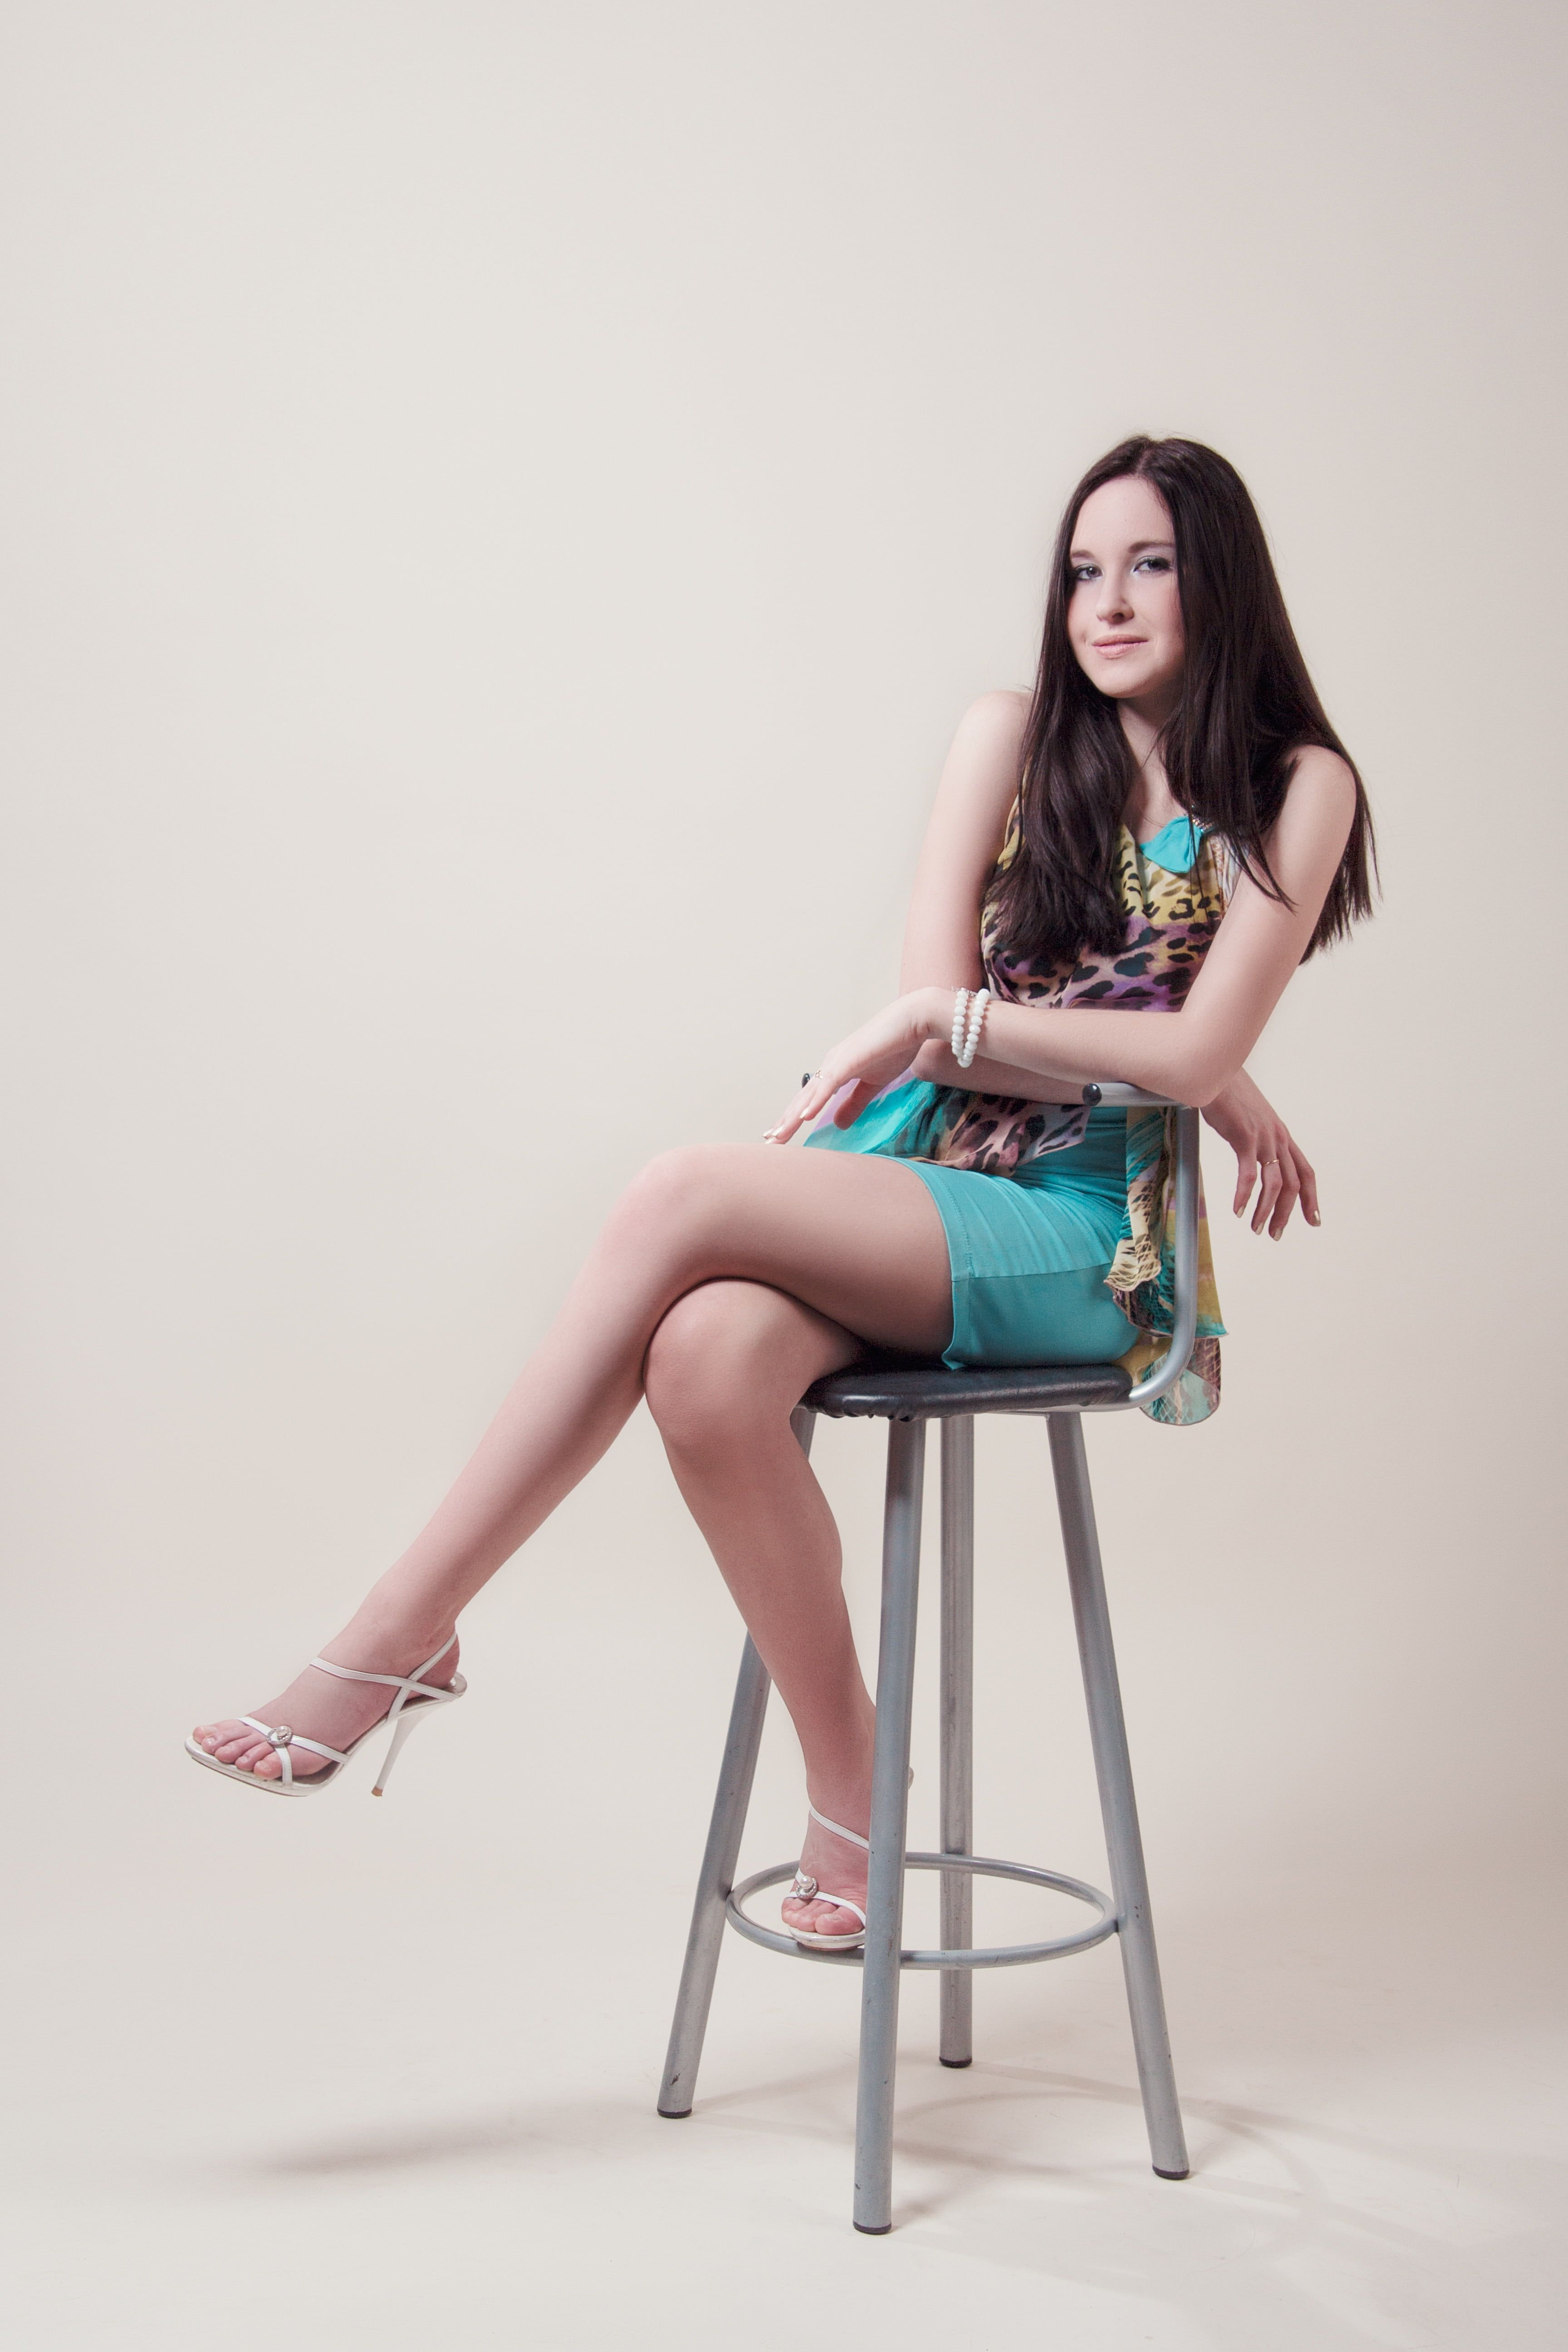 Woman Sitting In Chair In Dress